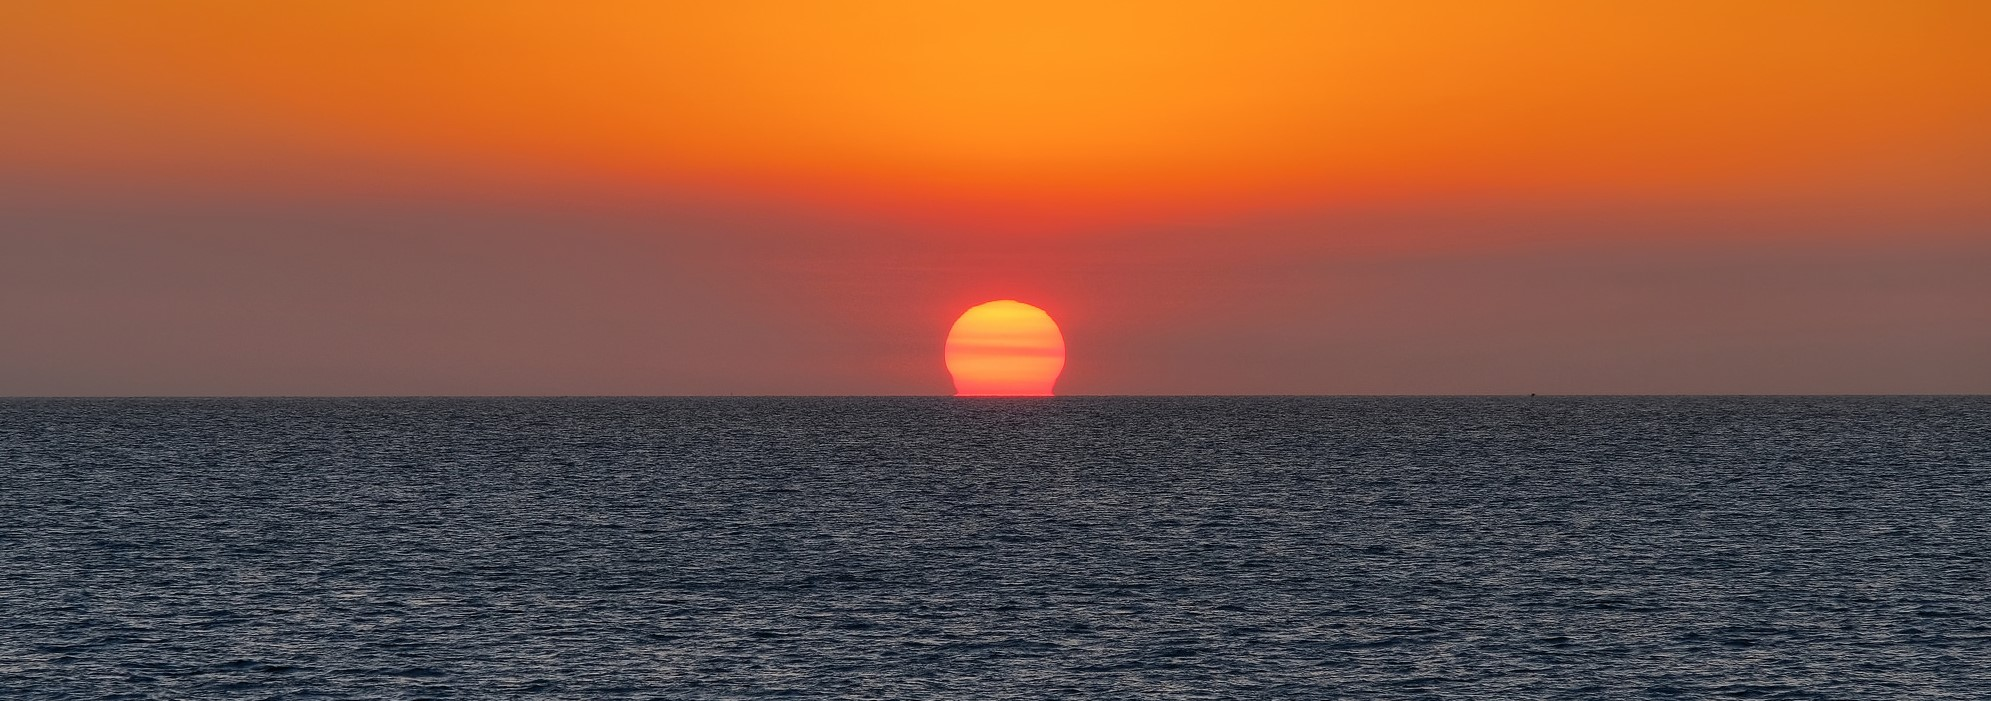 The sun sets over the Timor Sea, as seen from Darwin, August 2017 (Photo: Flickr/Geoff Whalan)